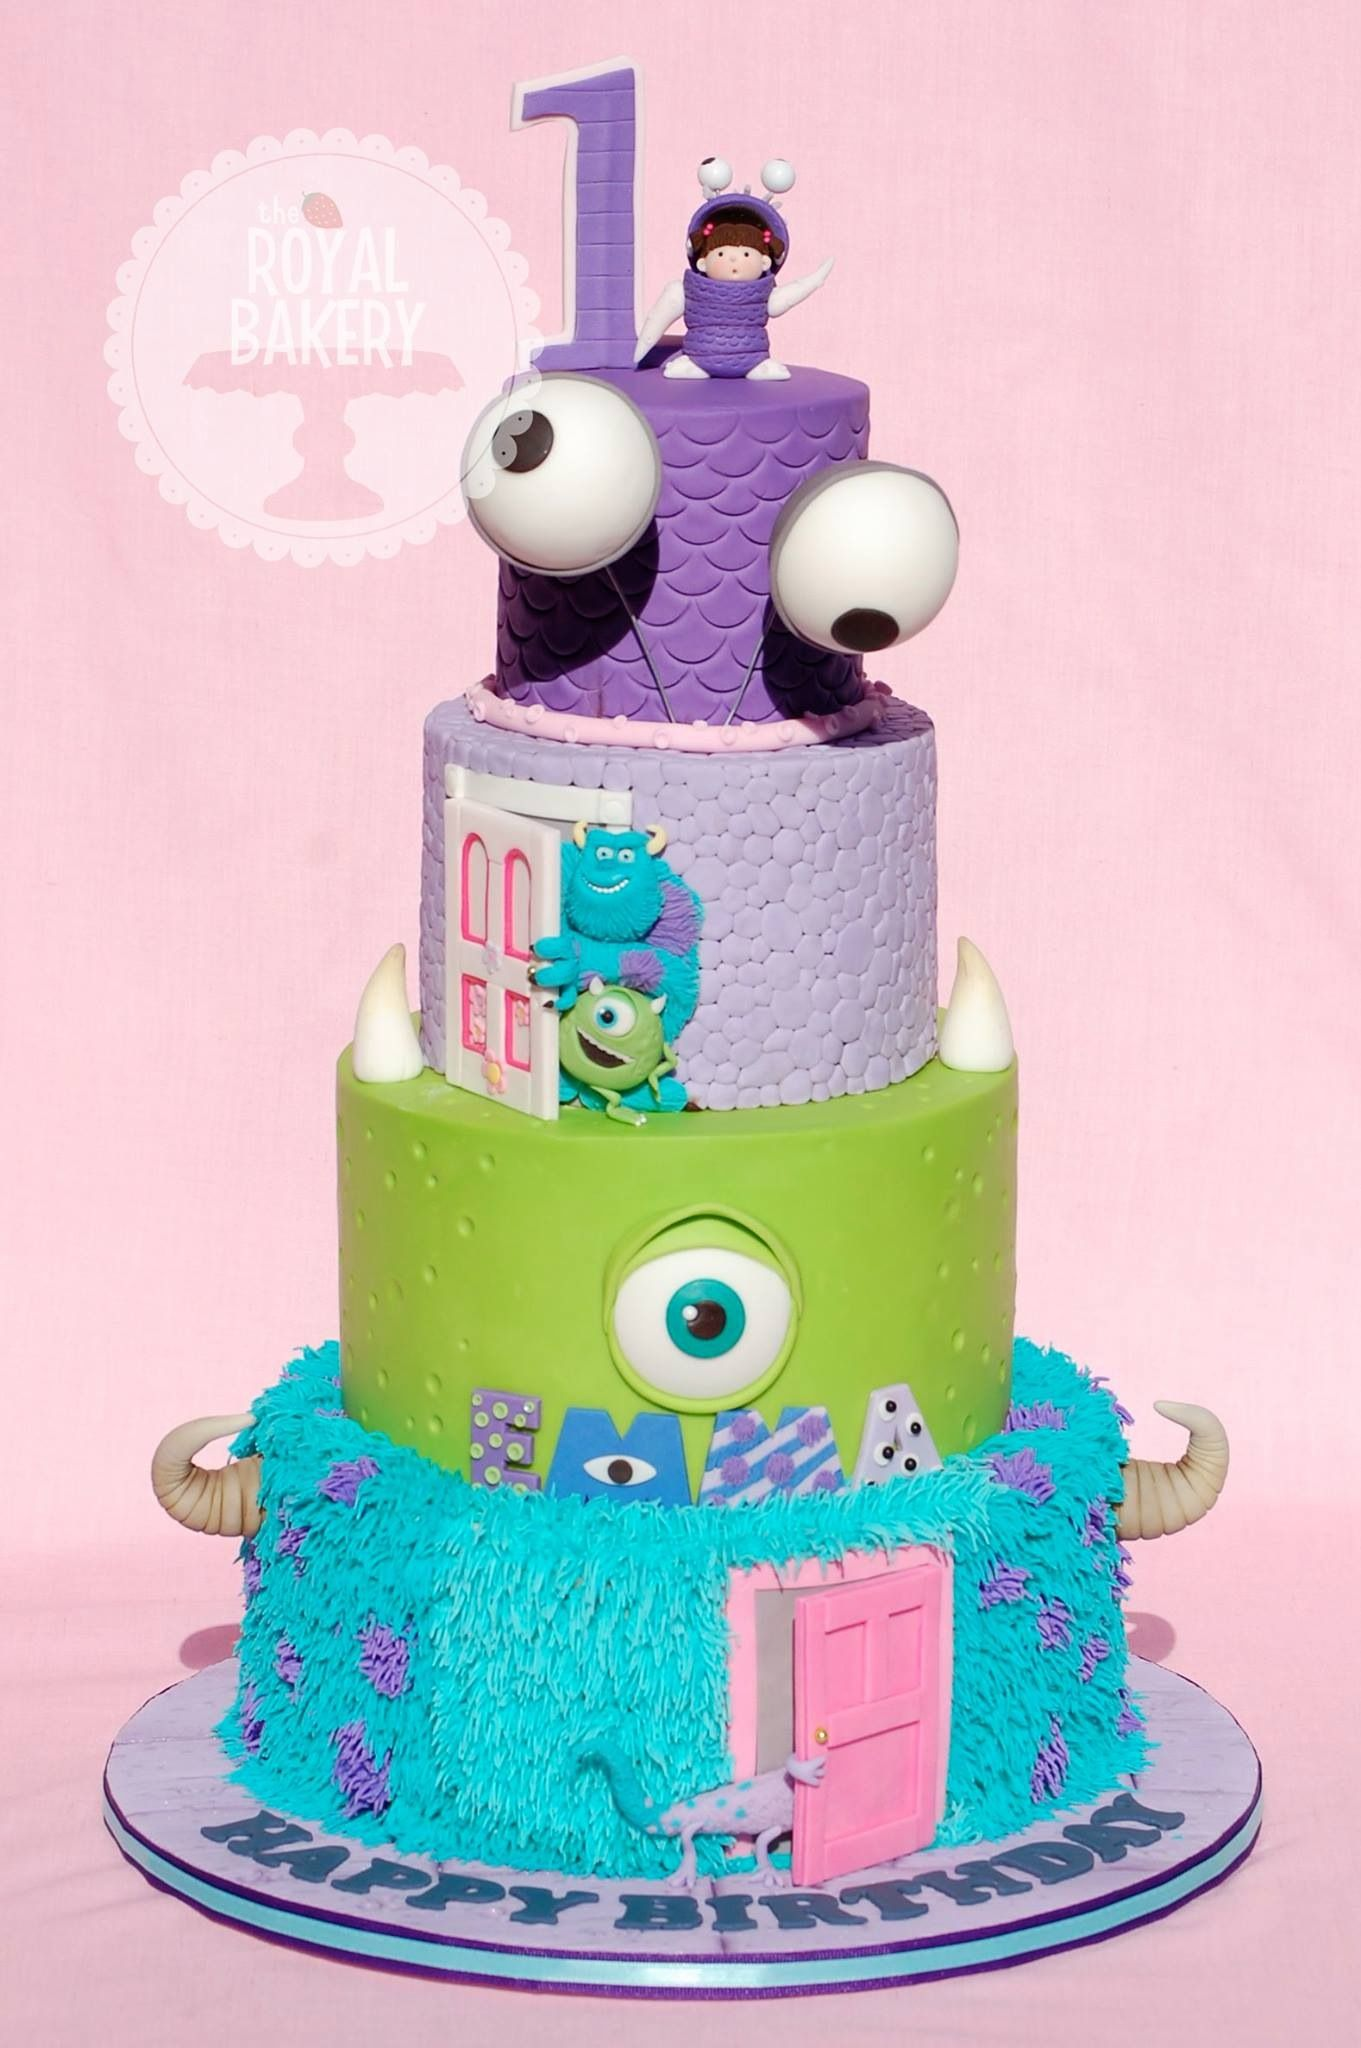 Monsters Inc. cake . @Dianna Worley something like this, the 3rd layer could be boo, and we don't have to do a 4th if you don't want too